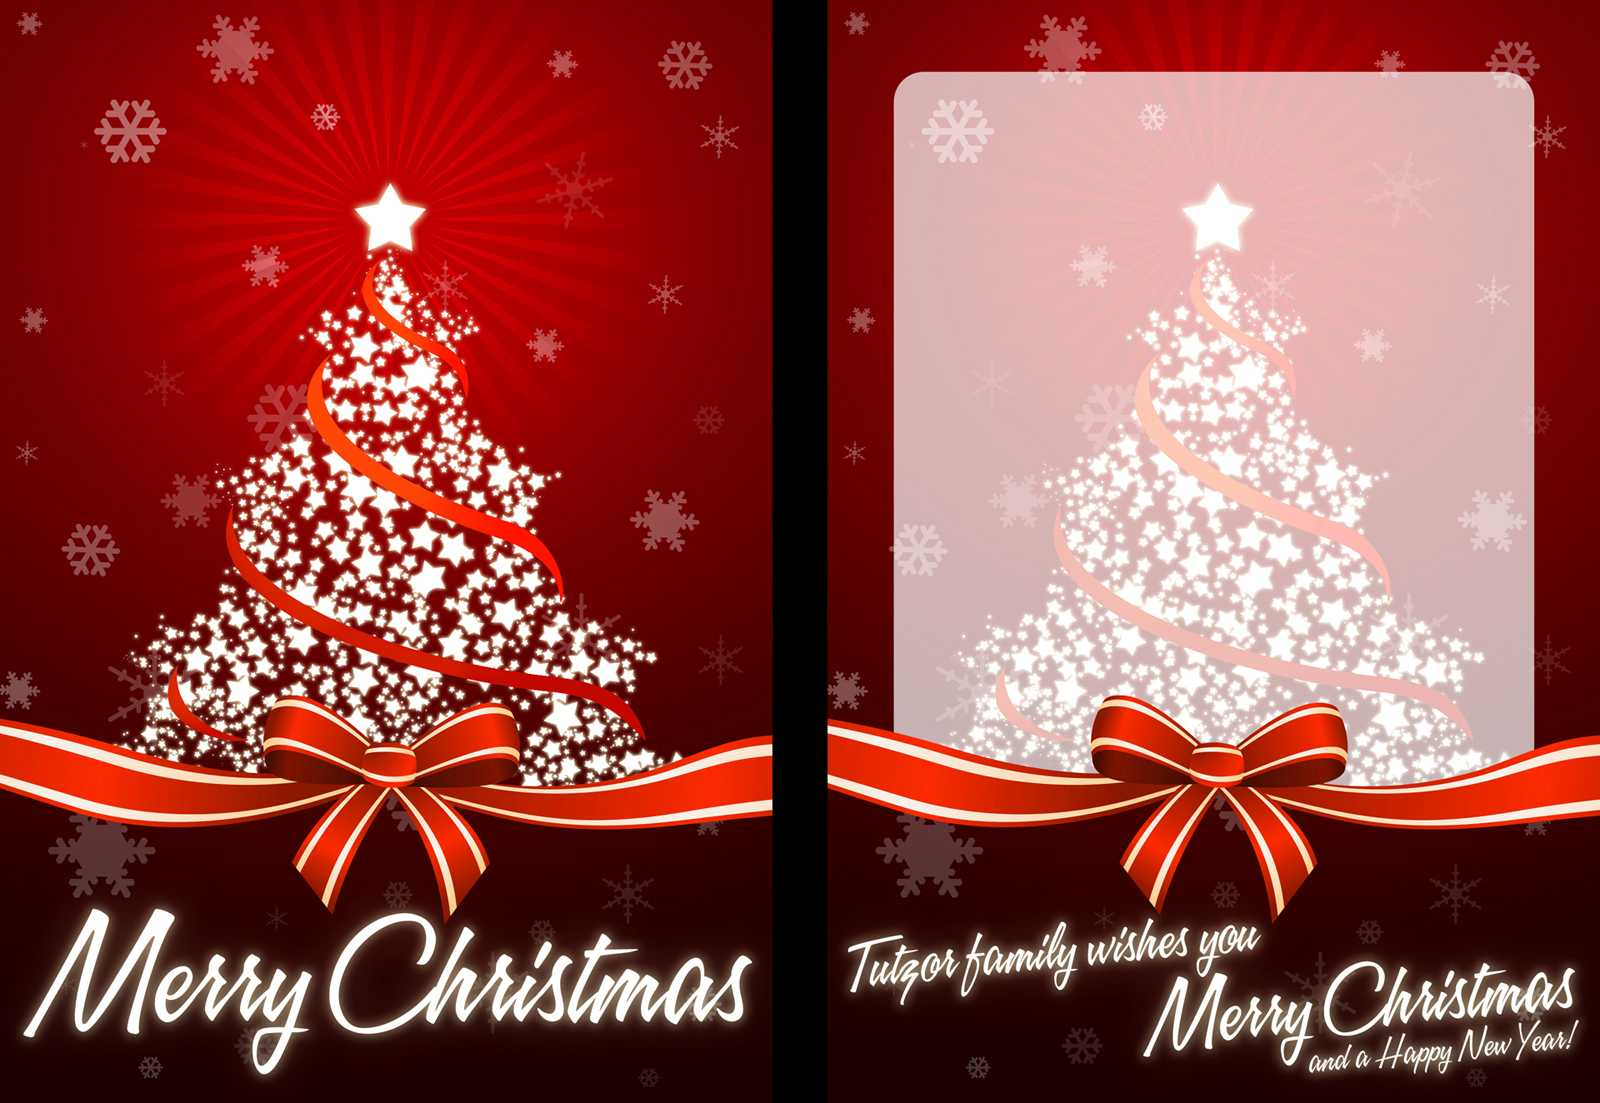 Christmas Card Templates Printable - Major.magdalene-Project with regard to Print Your Own Christmas Cards Templates